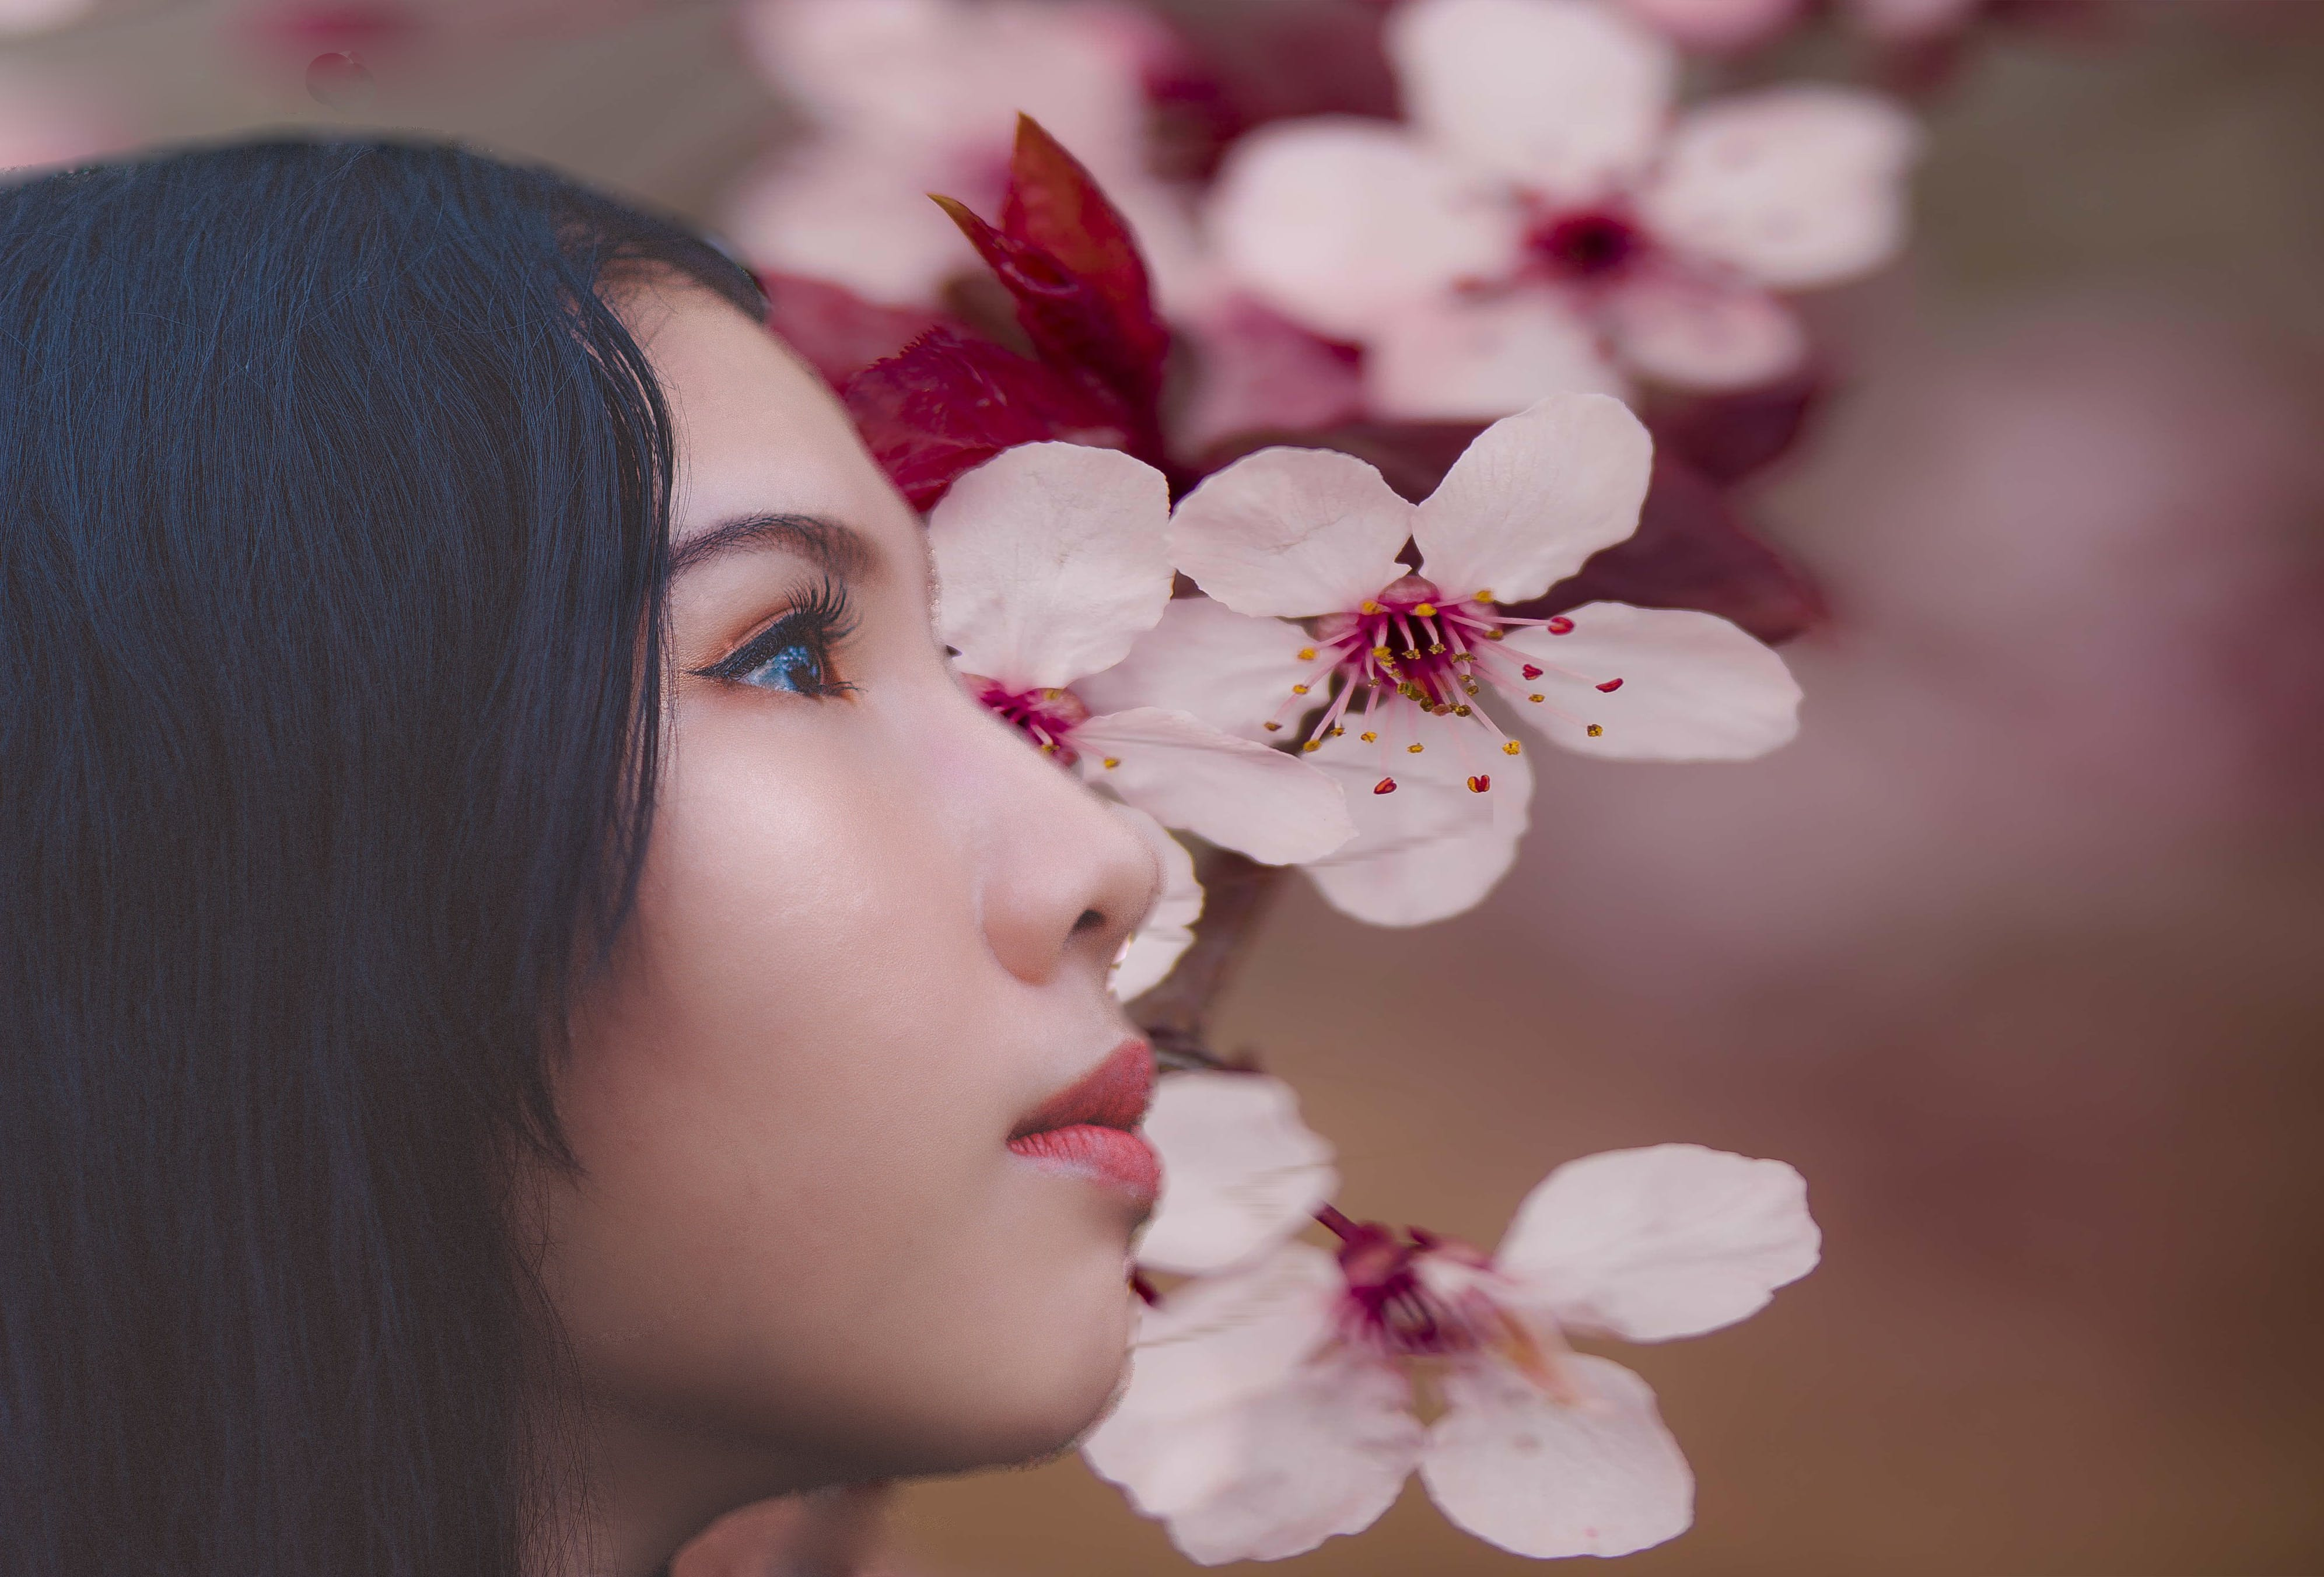 Woman Beside Cherry Blossoms